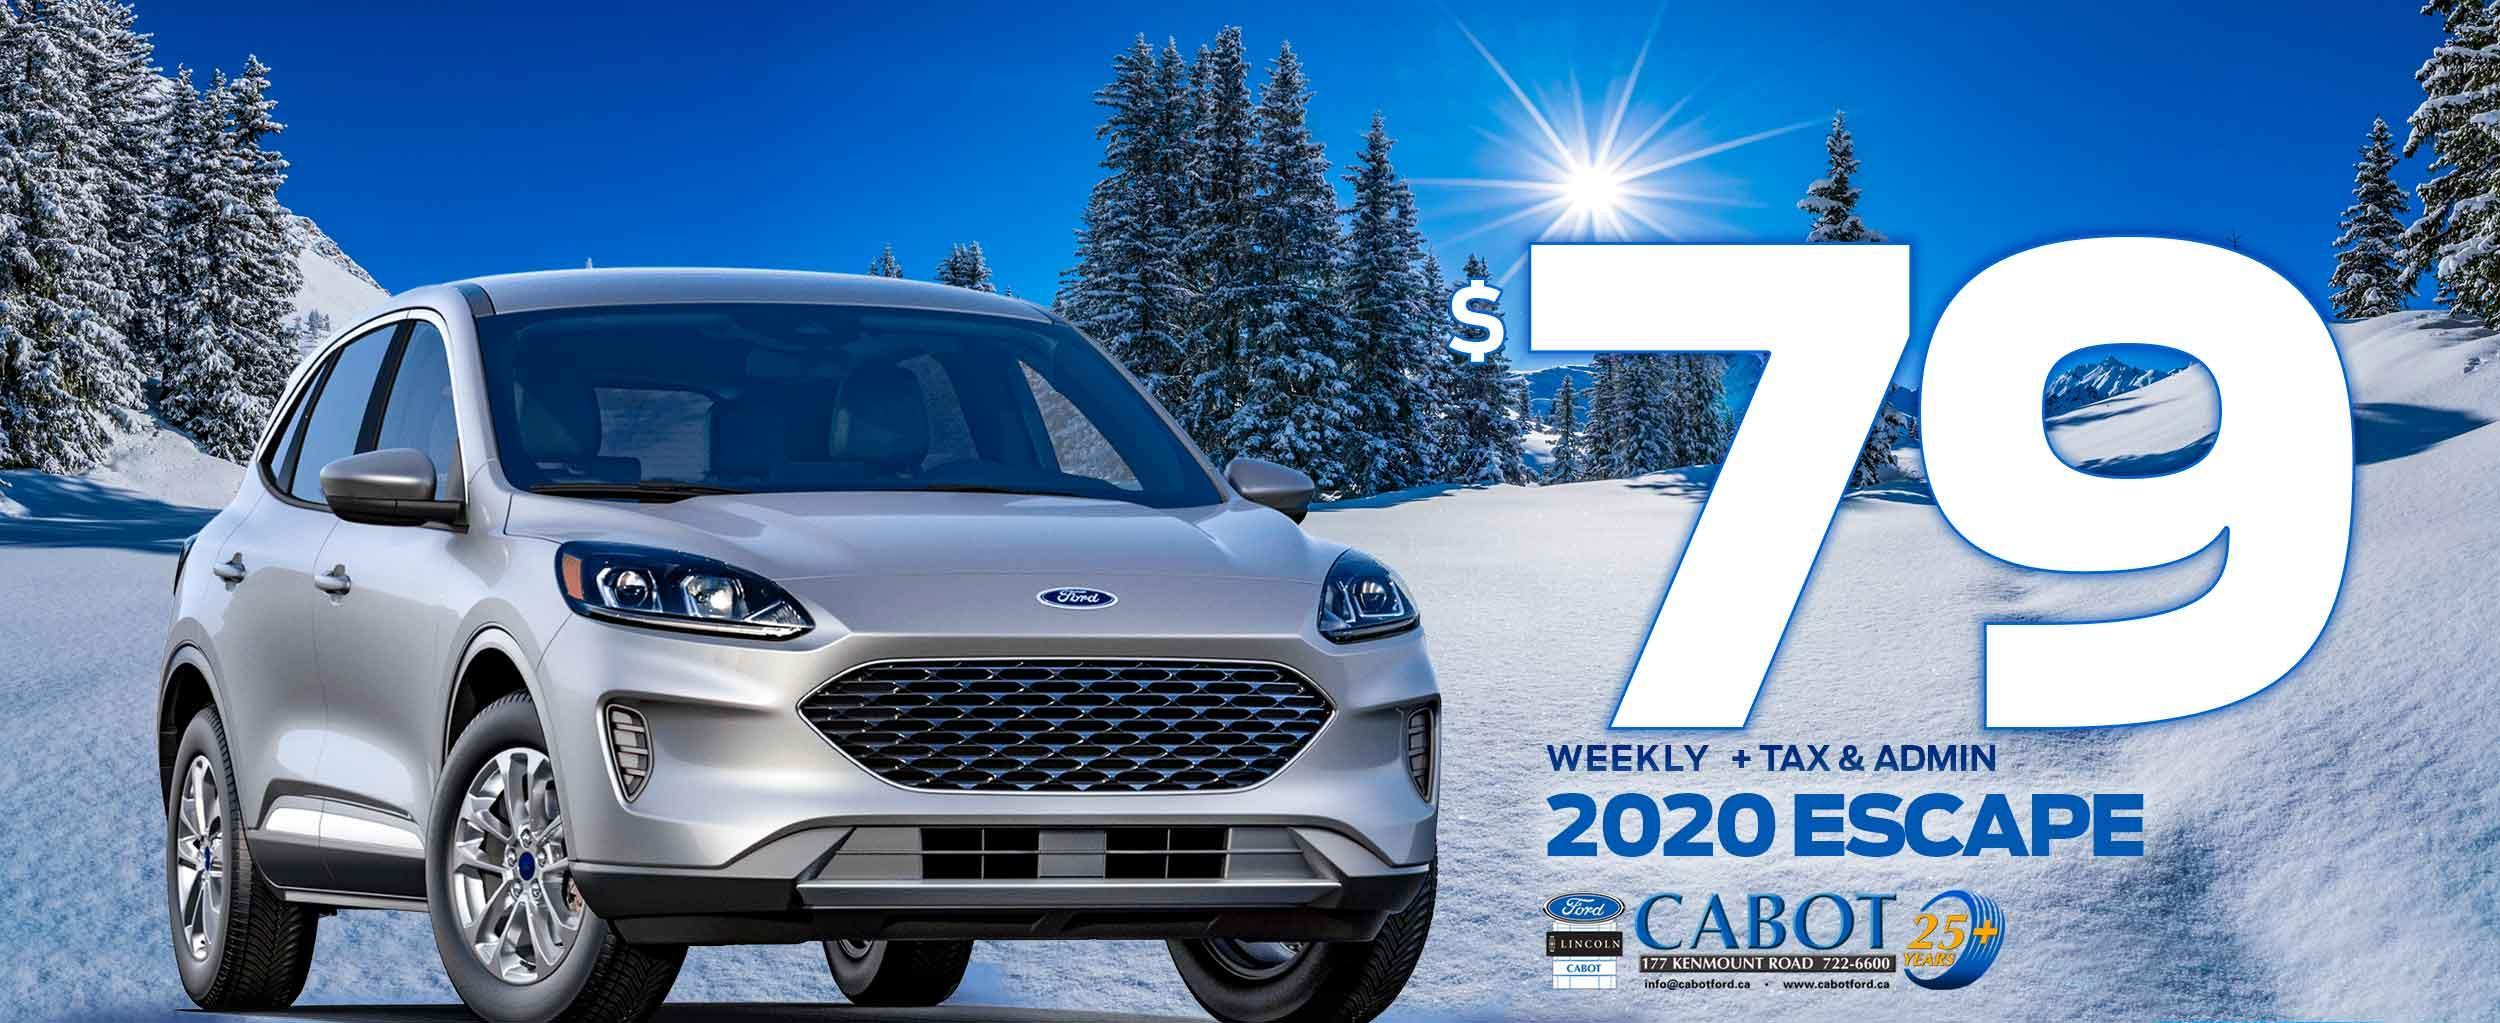 Thinking Escape? Think Cabot! Get the 2020 ESCAPE SE AWD FOR JUST $79 WEEKLY + tax & admin!